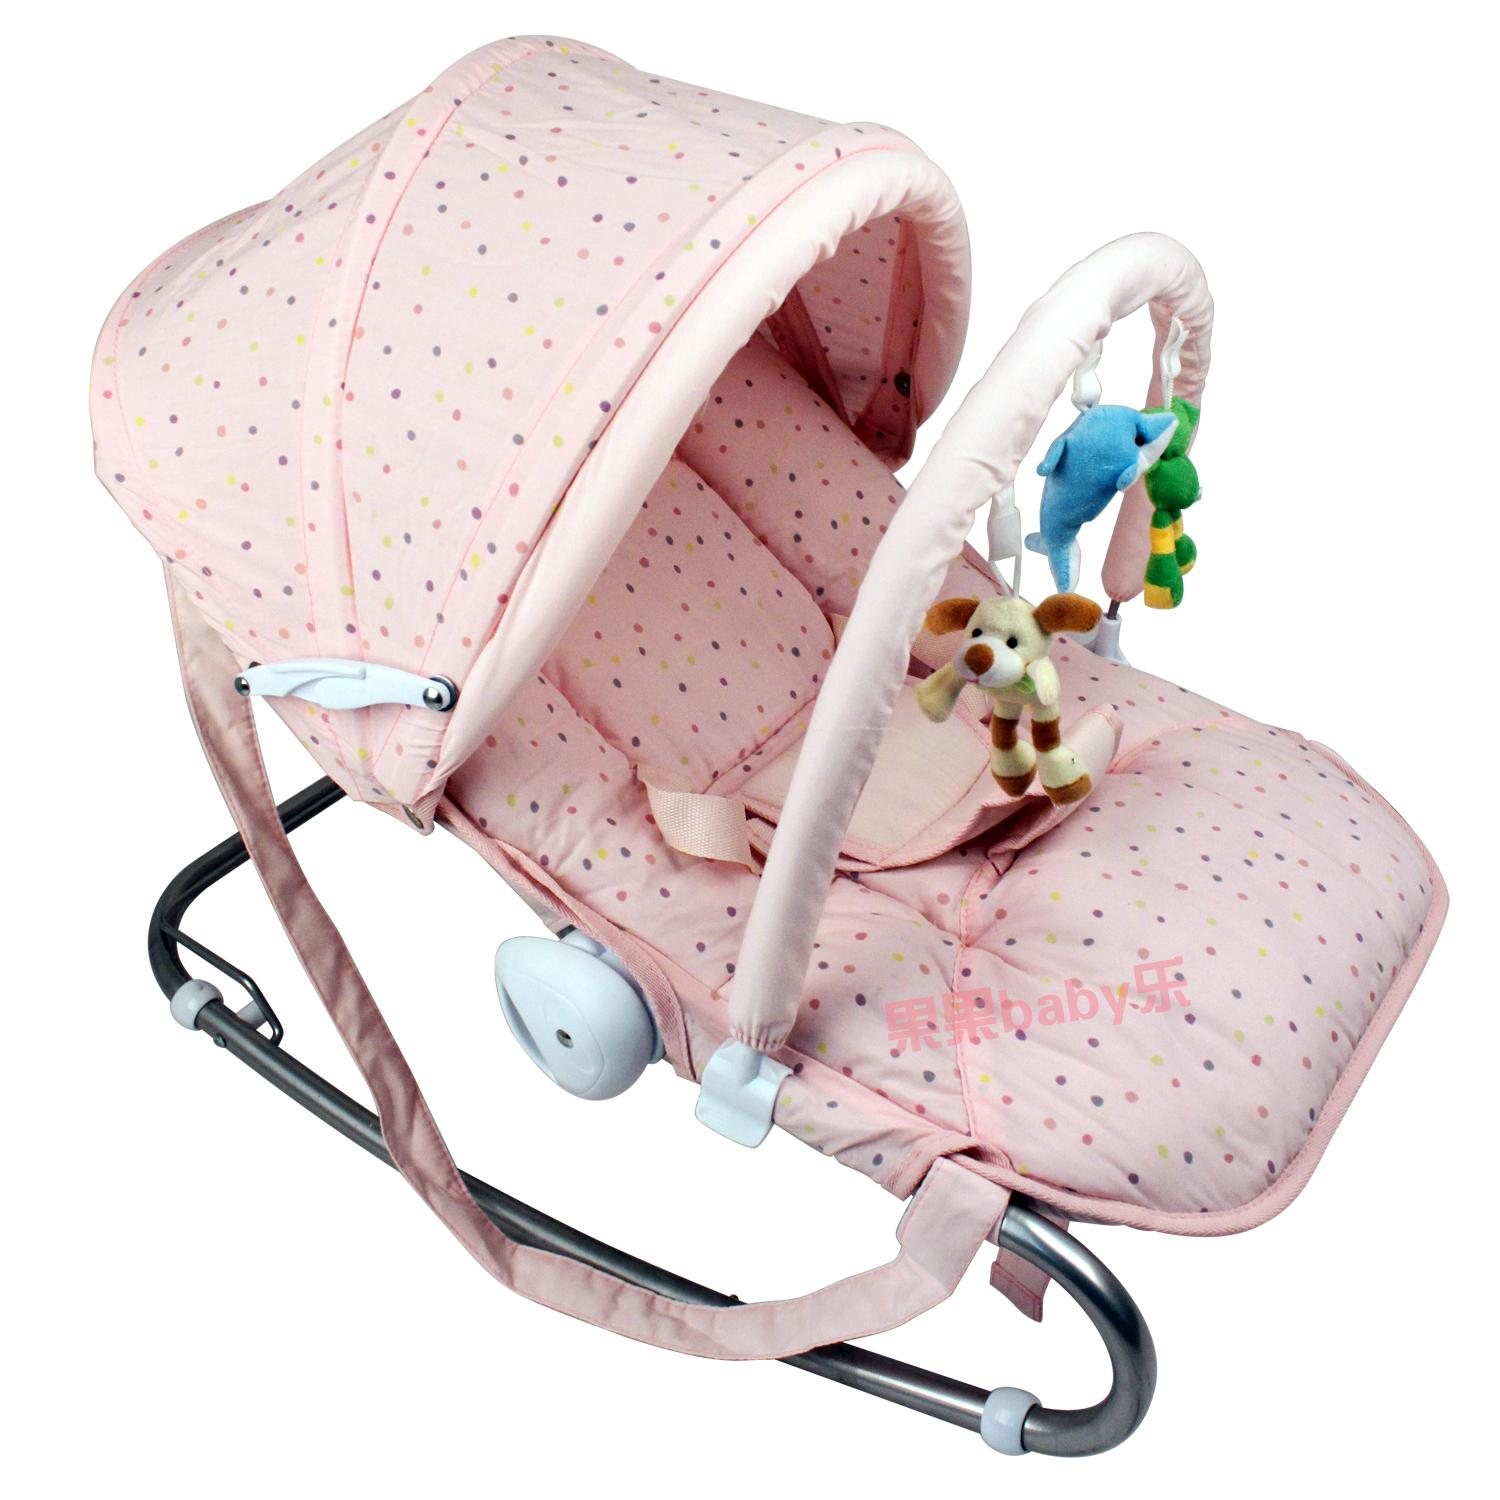 Modern baby swing ideas homesfeed - Automatic rocking chair for adults ...